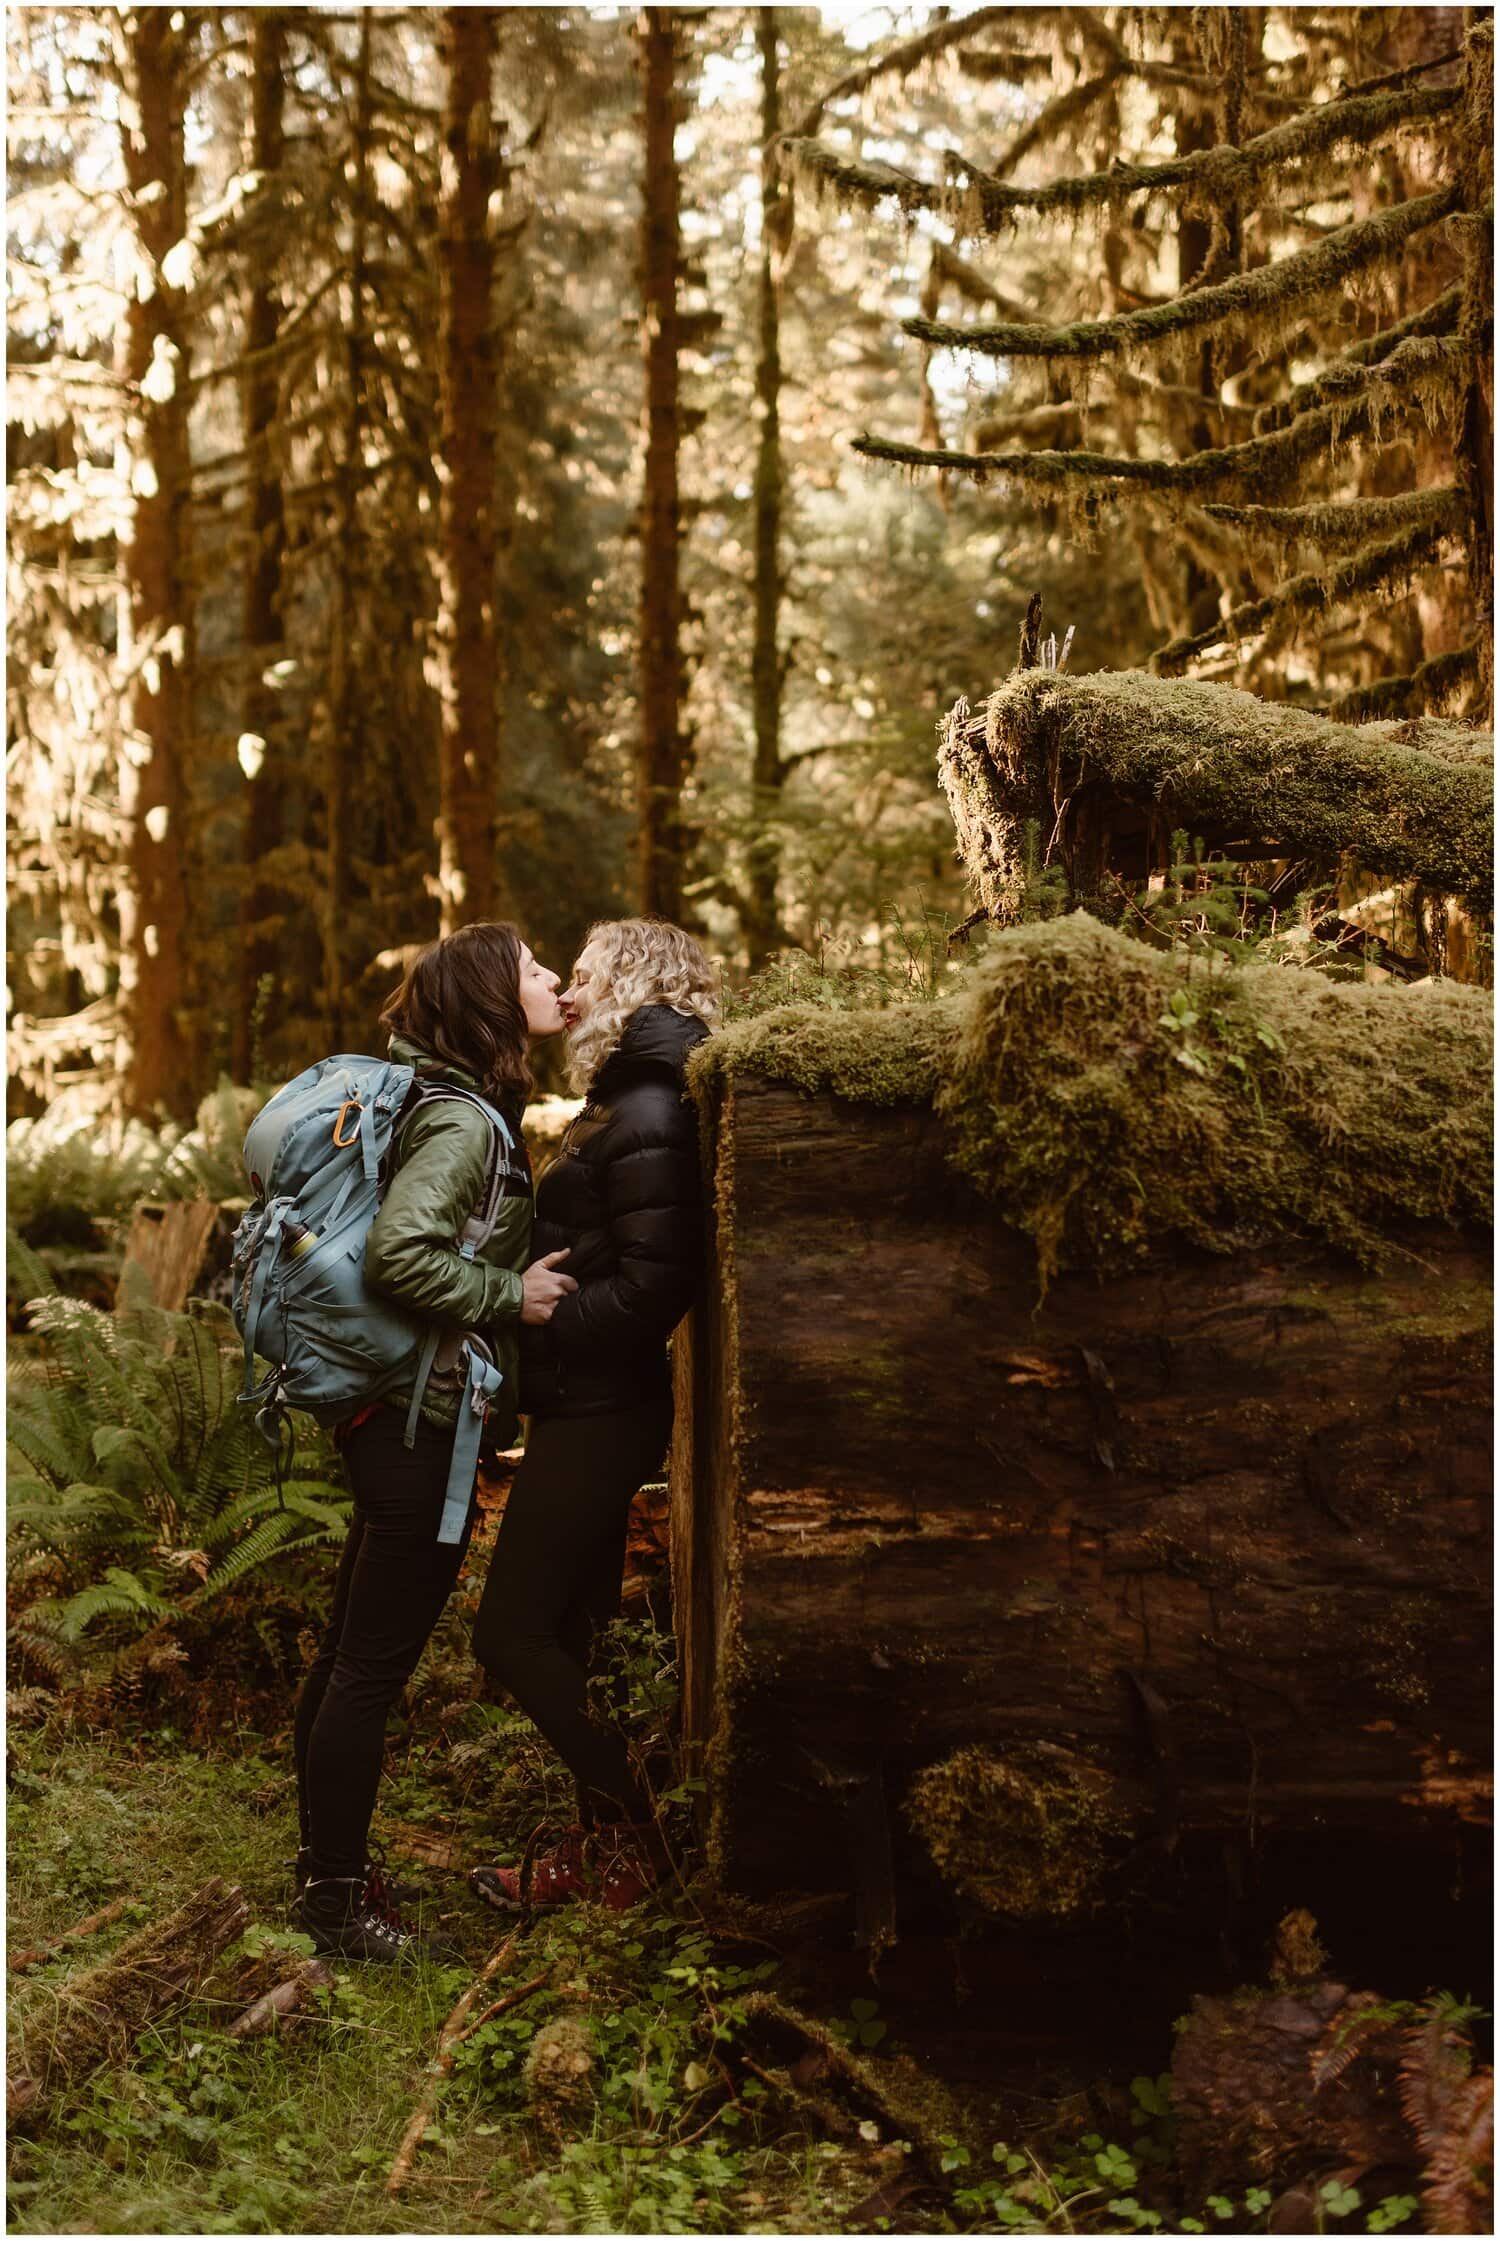 Two brides kiss in a forest while dressed in hiking gear.